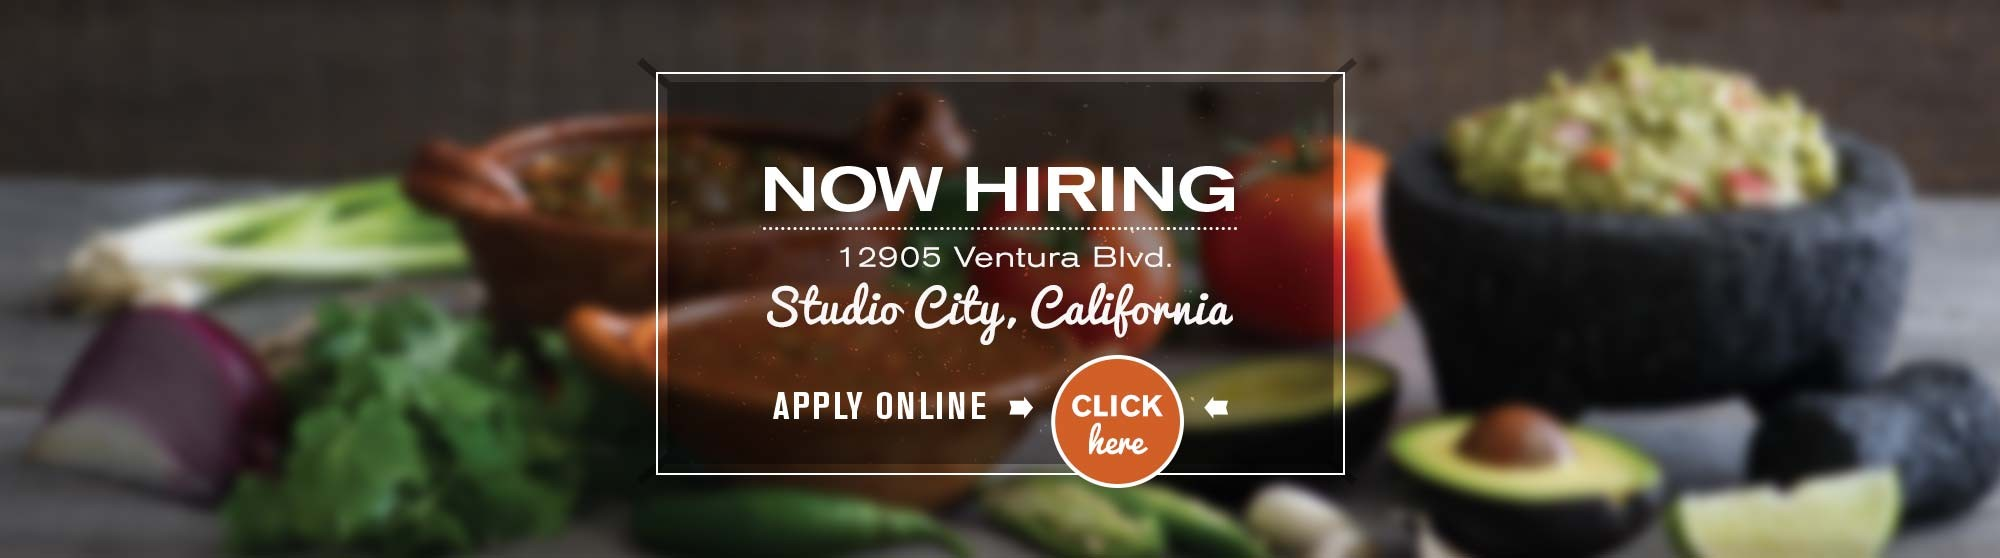 Now Hiring in Studio City - Apply Online